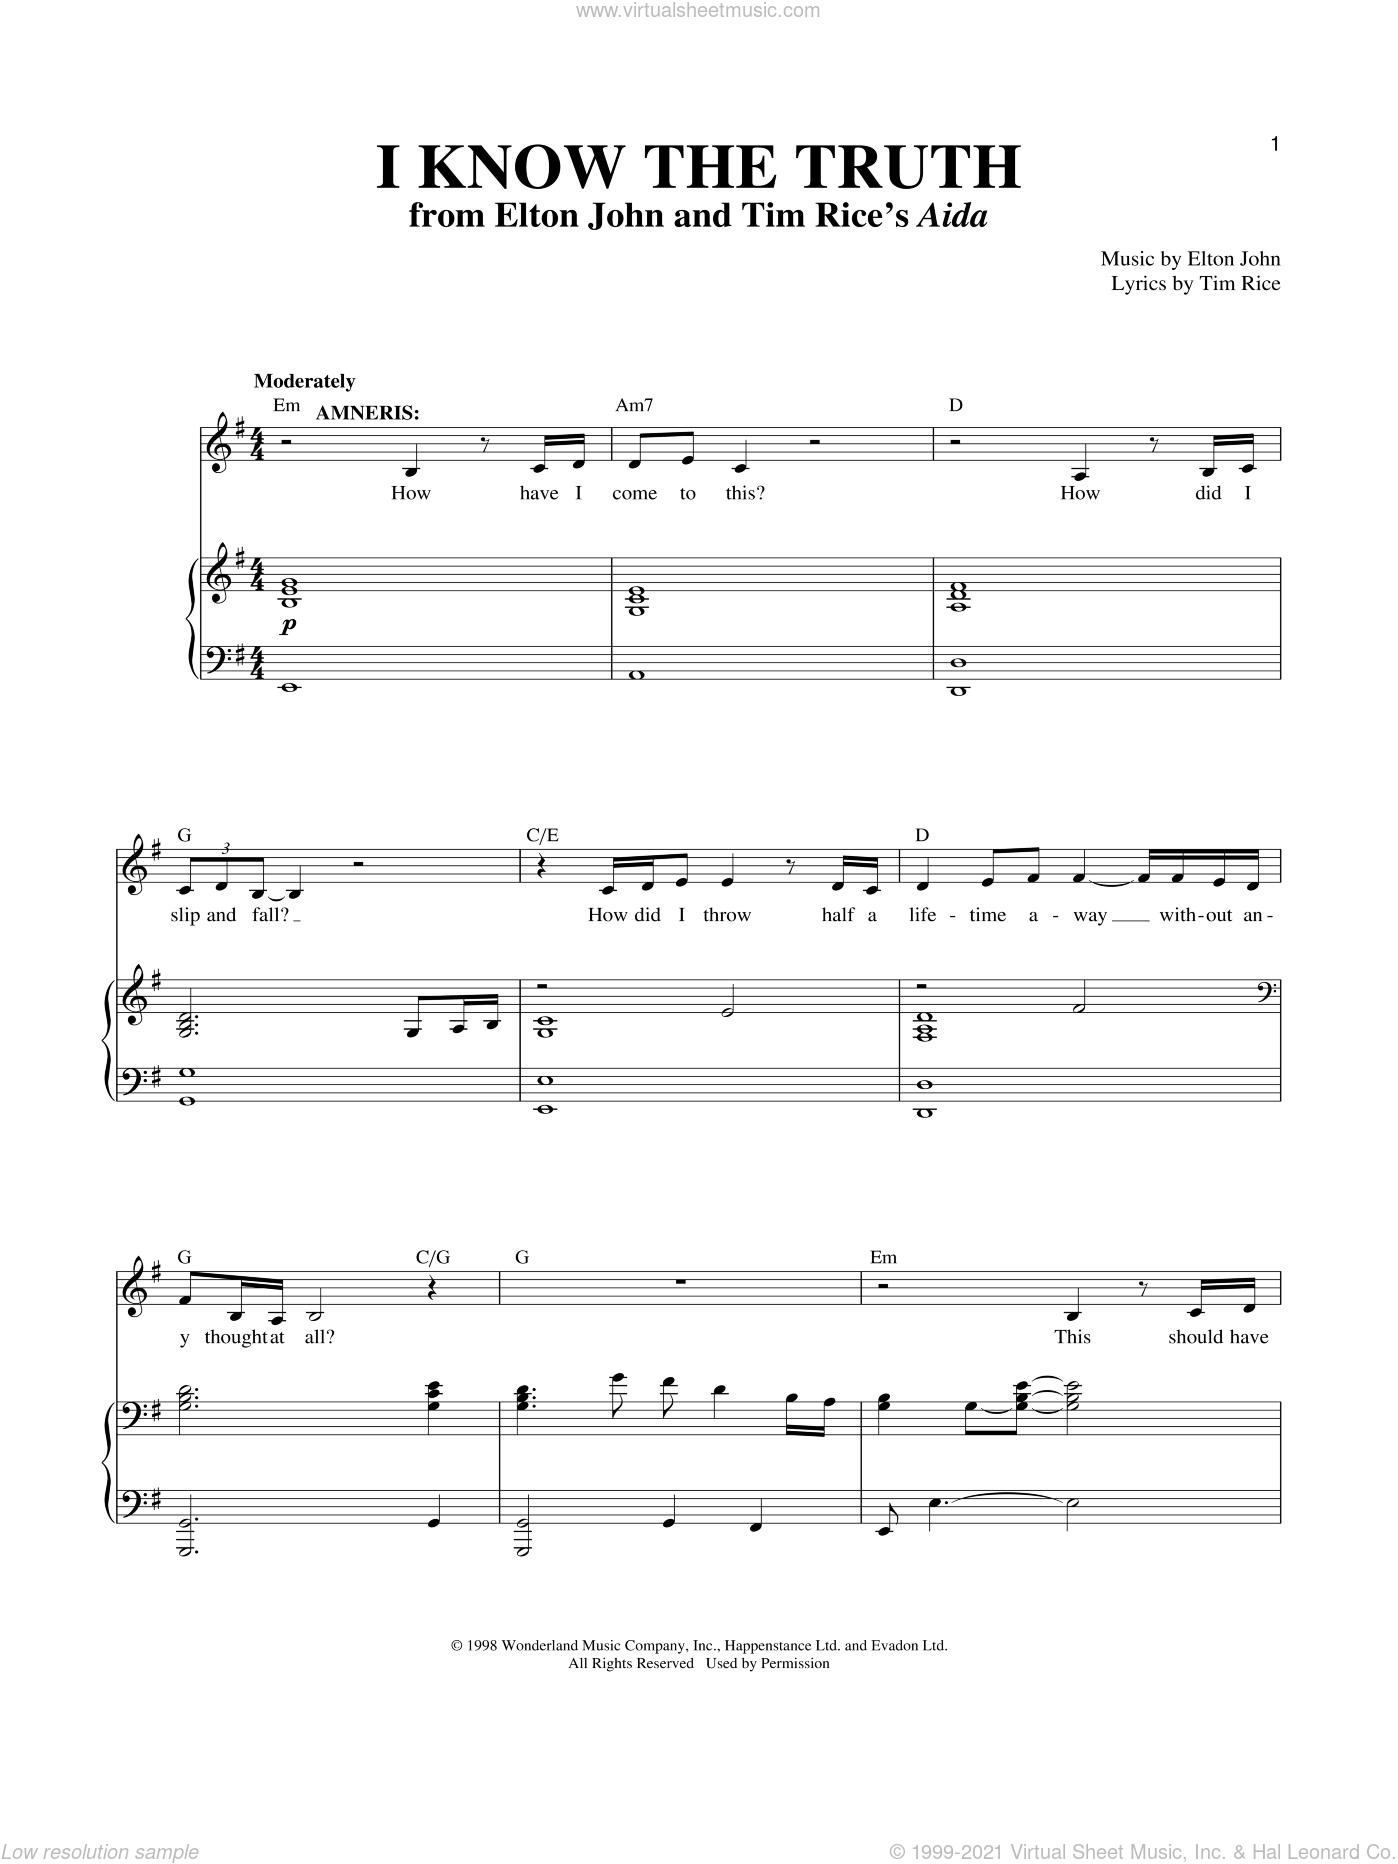 I Know The Truth sheet music for voice and piano by Elton John, Richard Walters and Tim Rice, intermediate